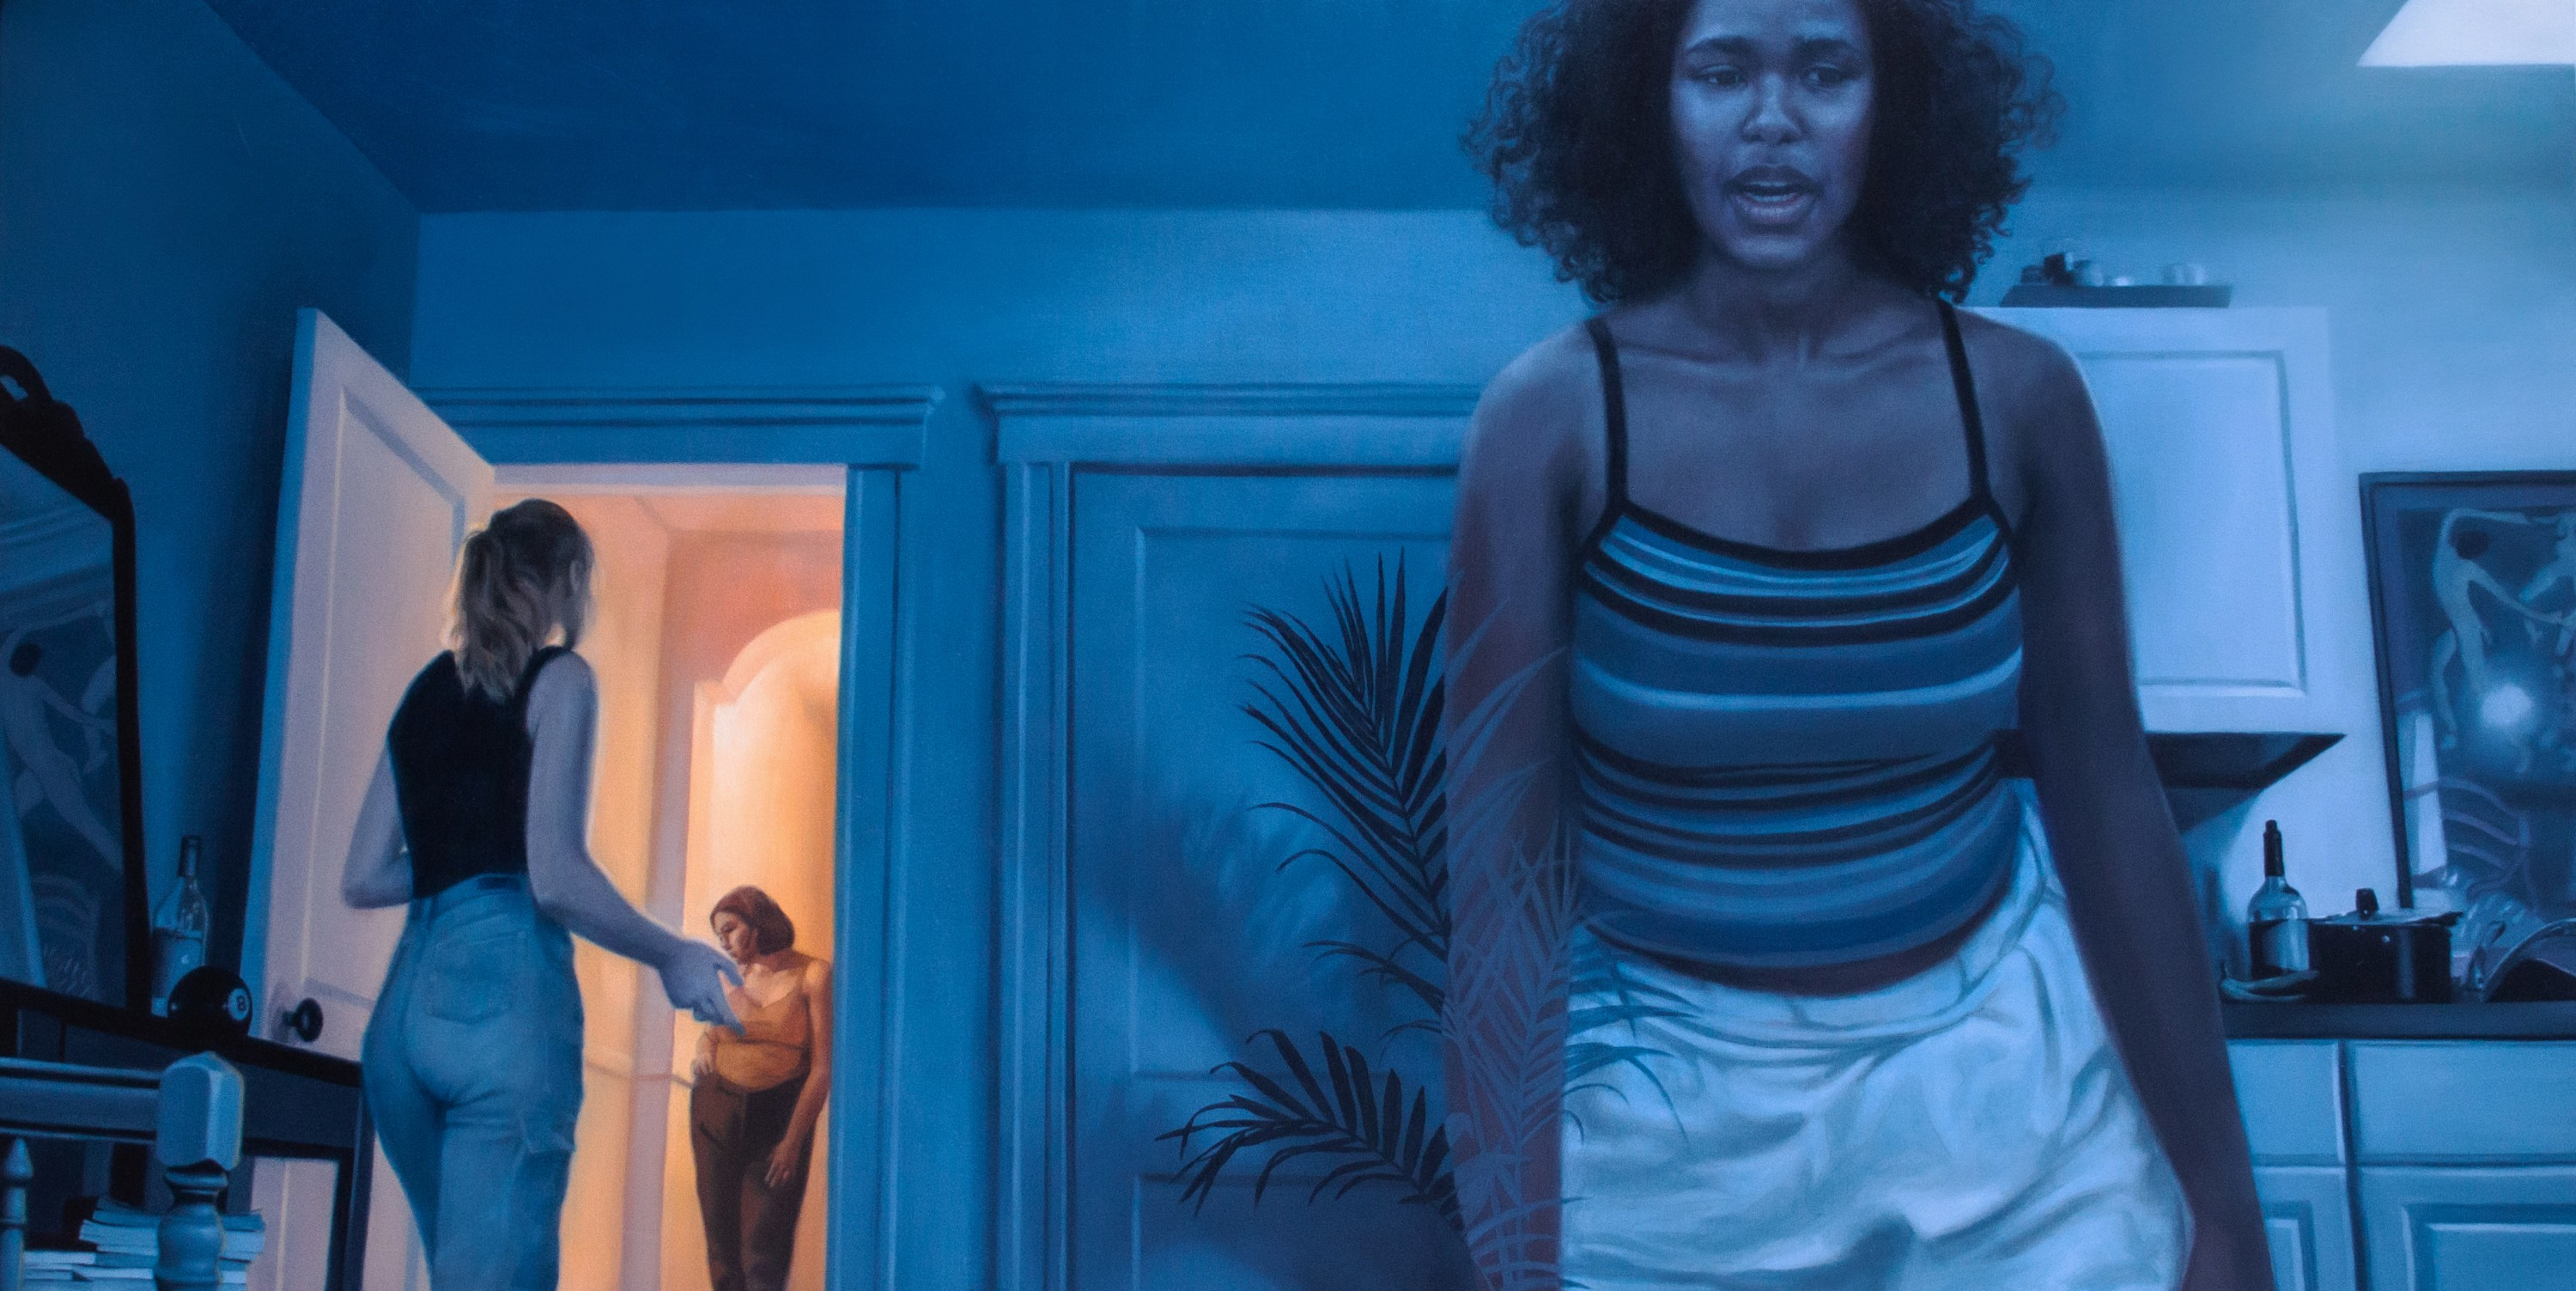 A figure is walking close to the viewer in a blue lowly lit room while two figures argue in the background. One figure in the background is entirely in a bright warmly lit room looking down and the other is standing in the doorway.